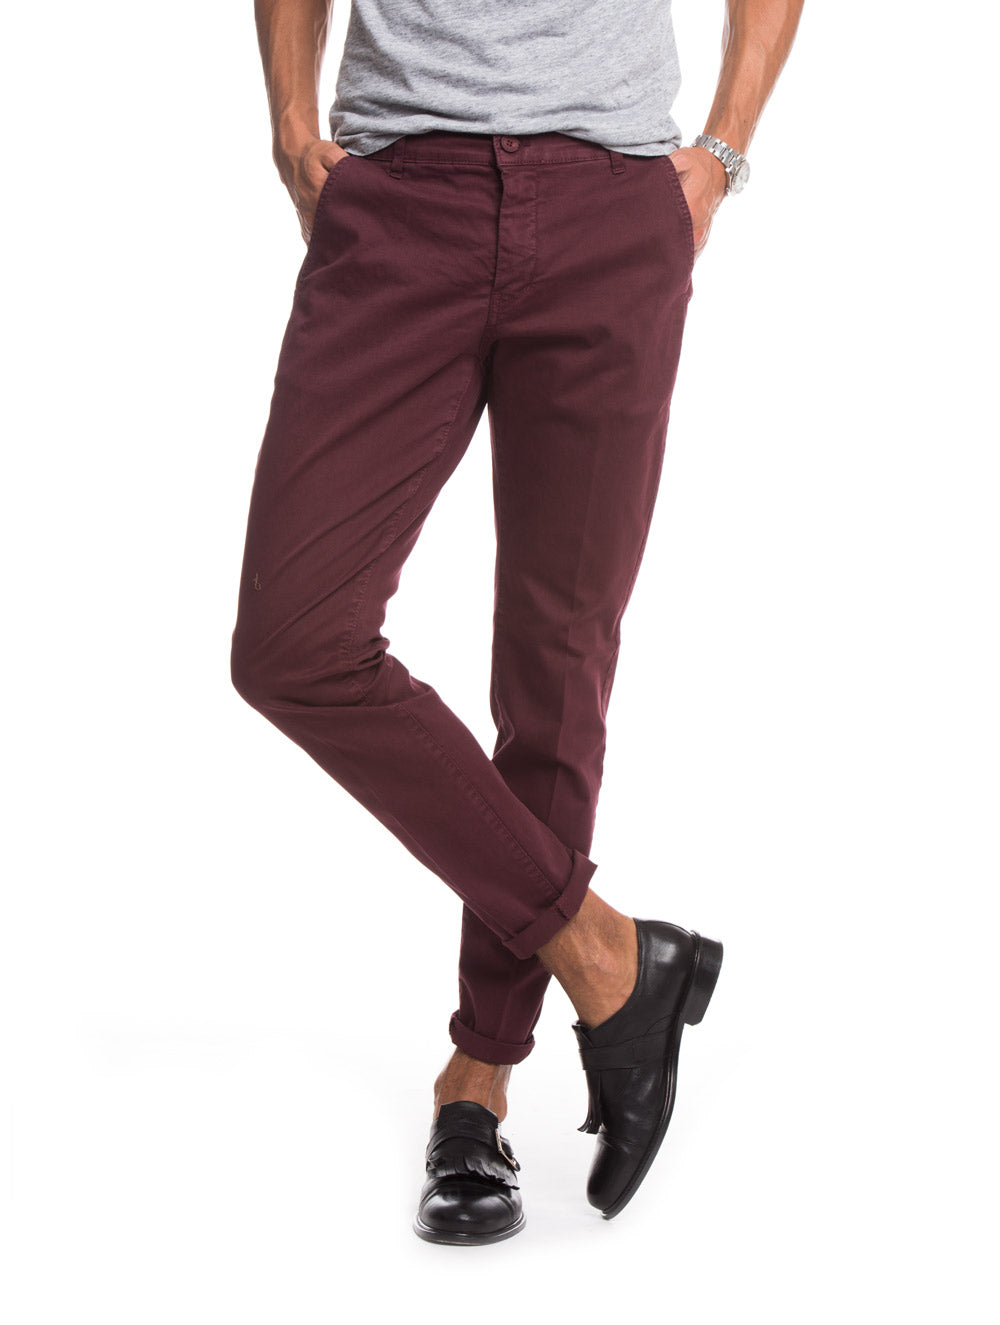 TROUSERS - Casual trousers HAD eAlDJ3gS